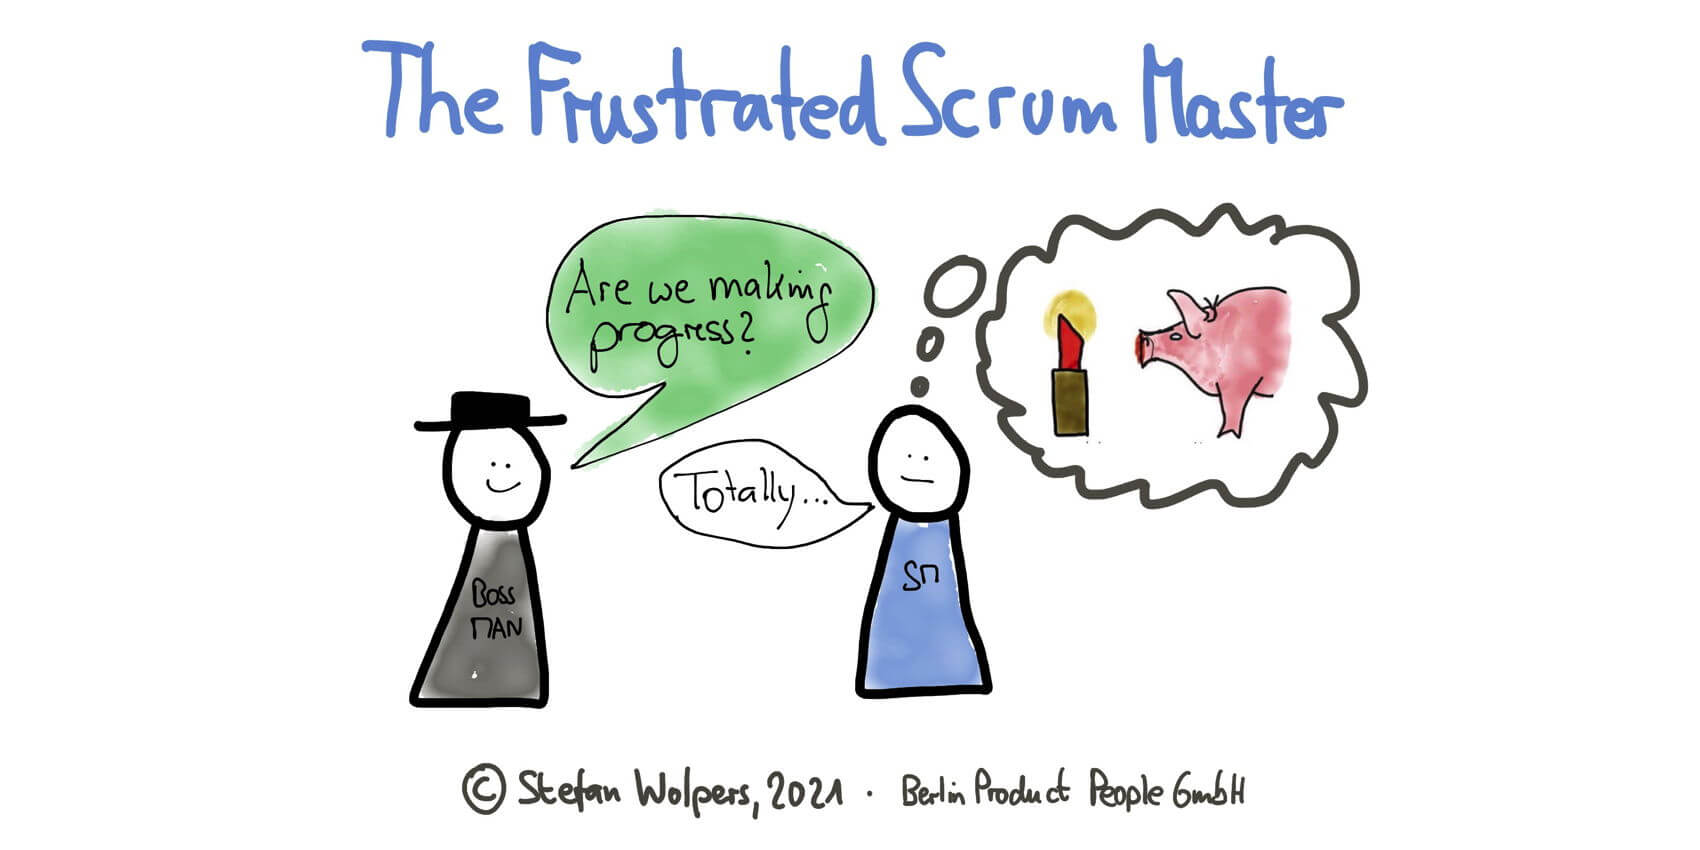 The Frustrated Scrum Master — When all the Effort Leads Nowhere